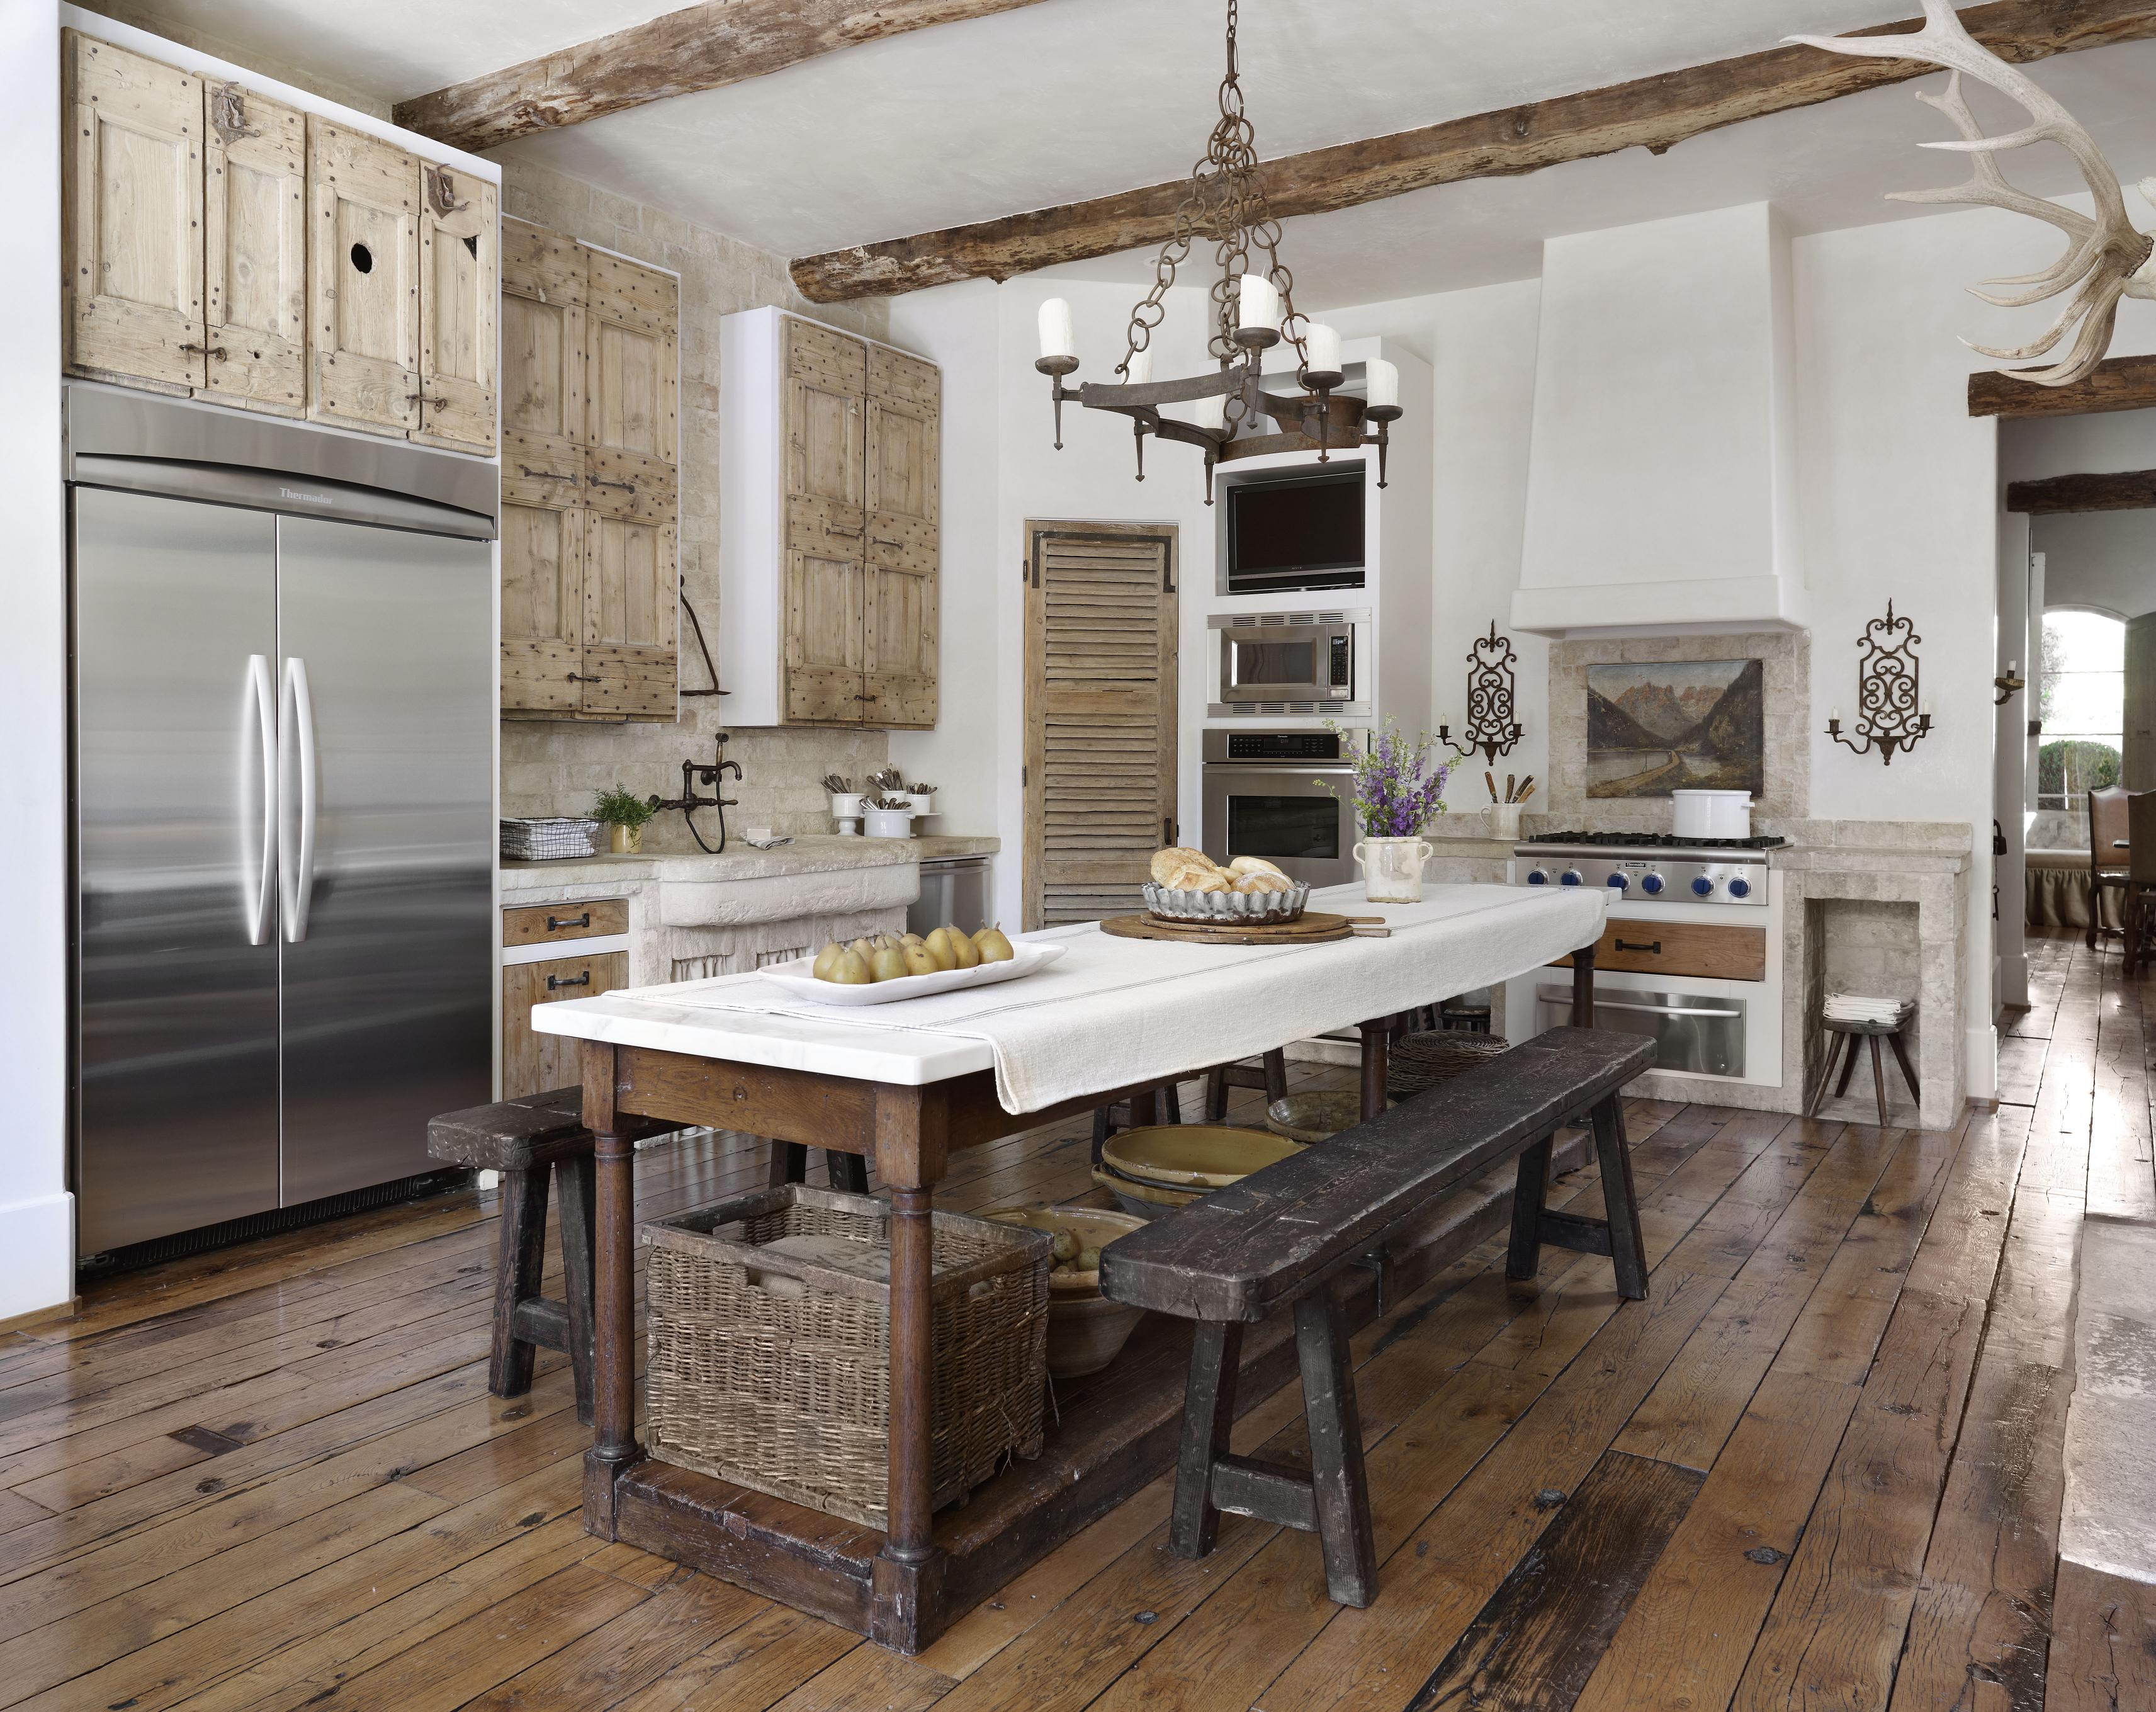 Country french kitchens traditional home - Country style kitchen cabinets design ...